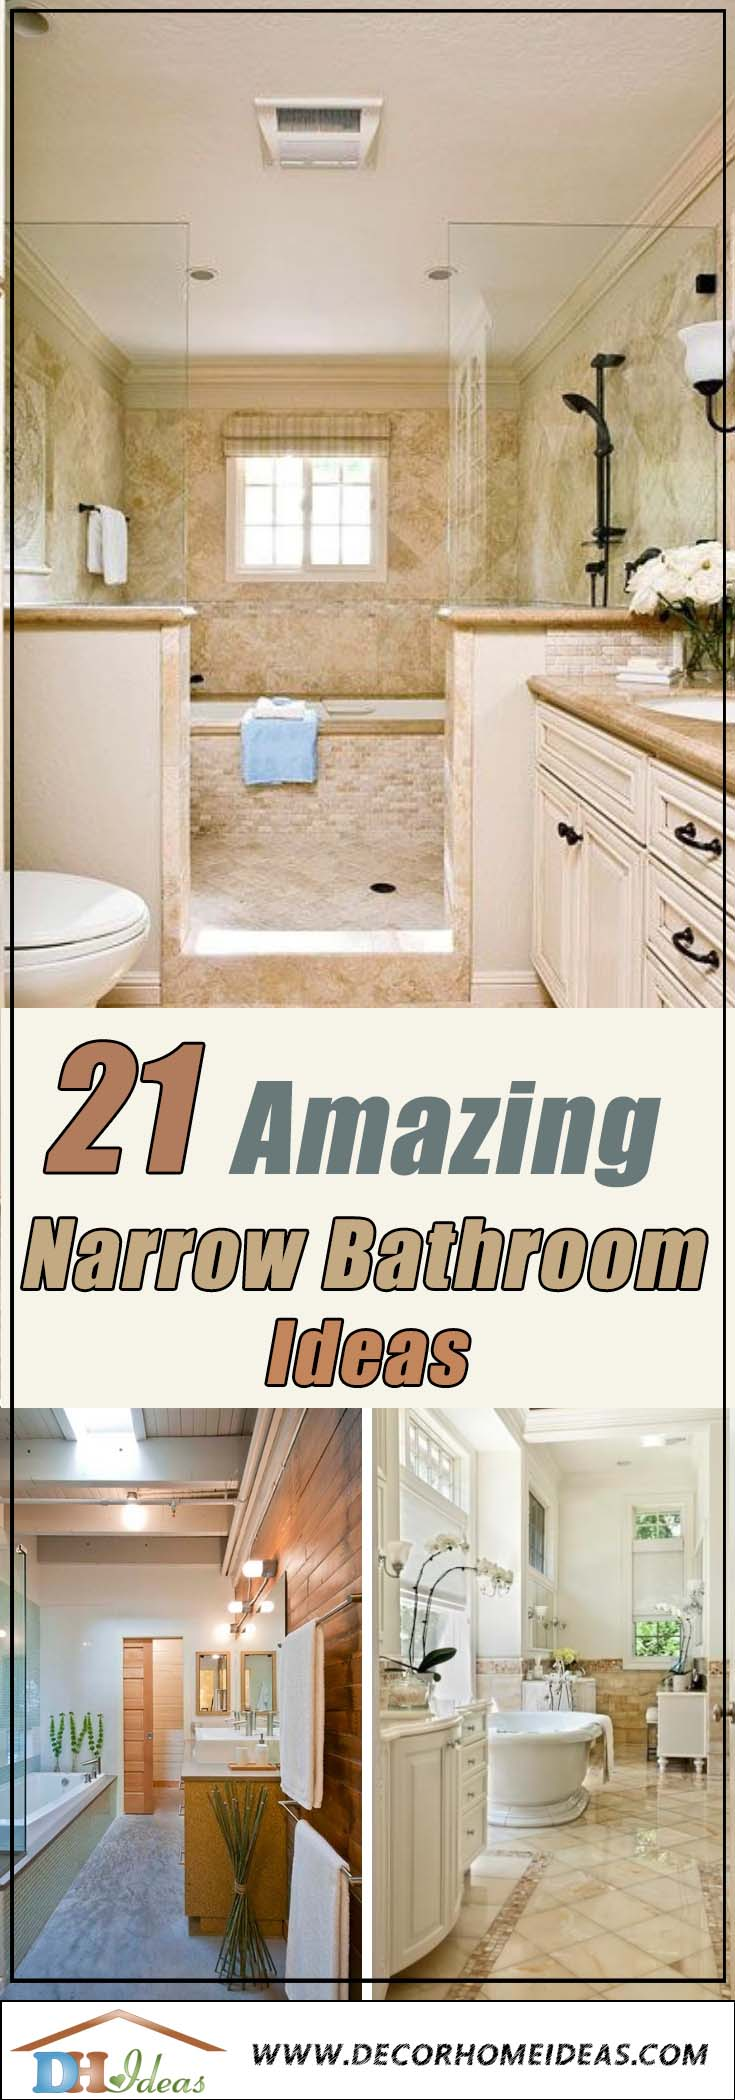 Narrow Bathroom Ideas #bathroom #narrow #narrowbathroom #decorhomeideas